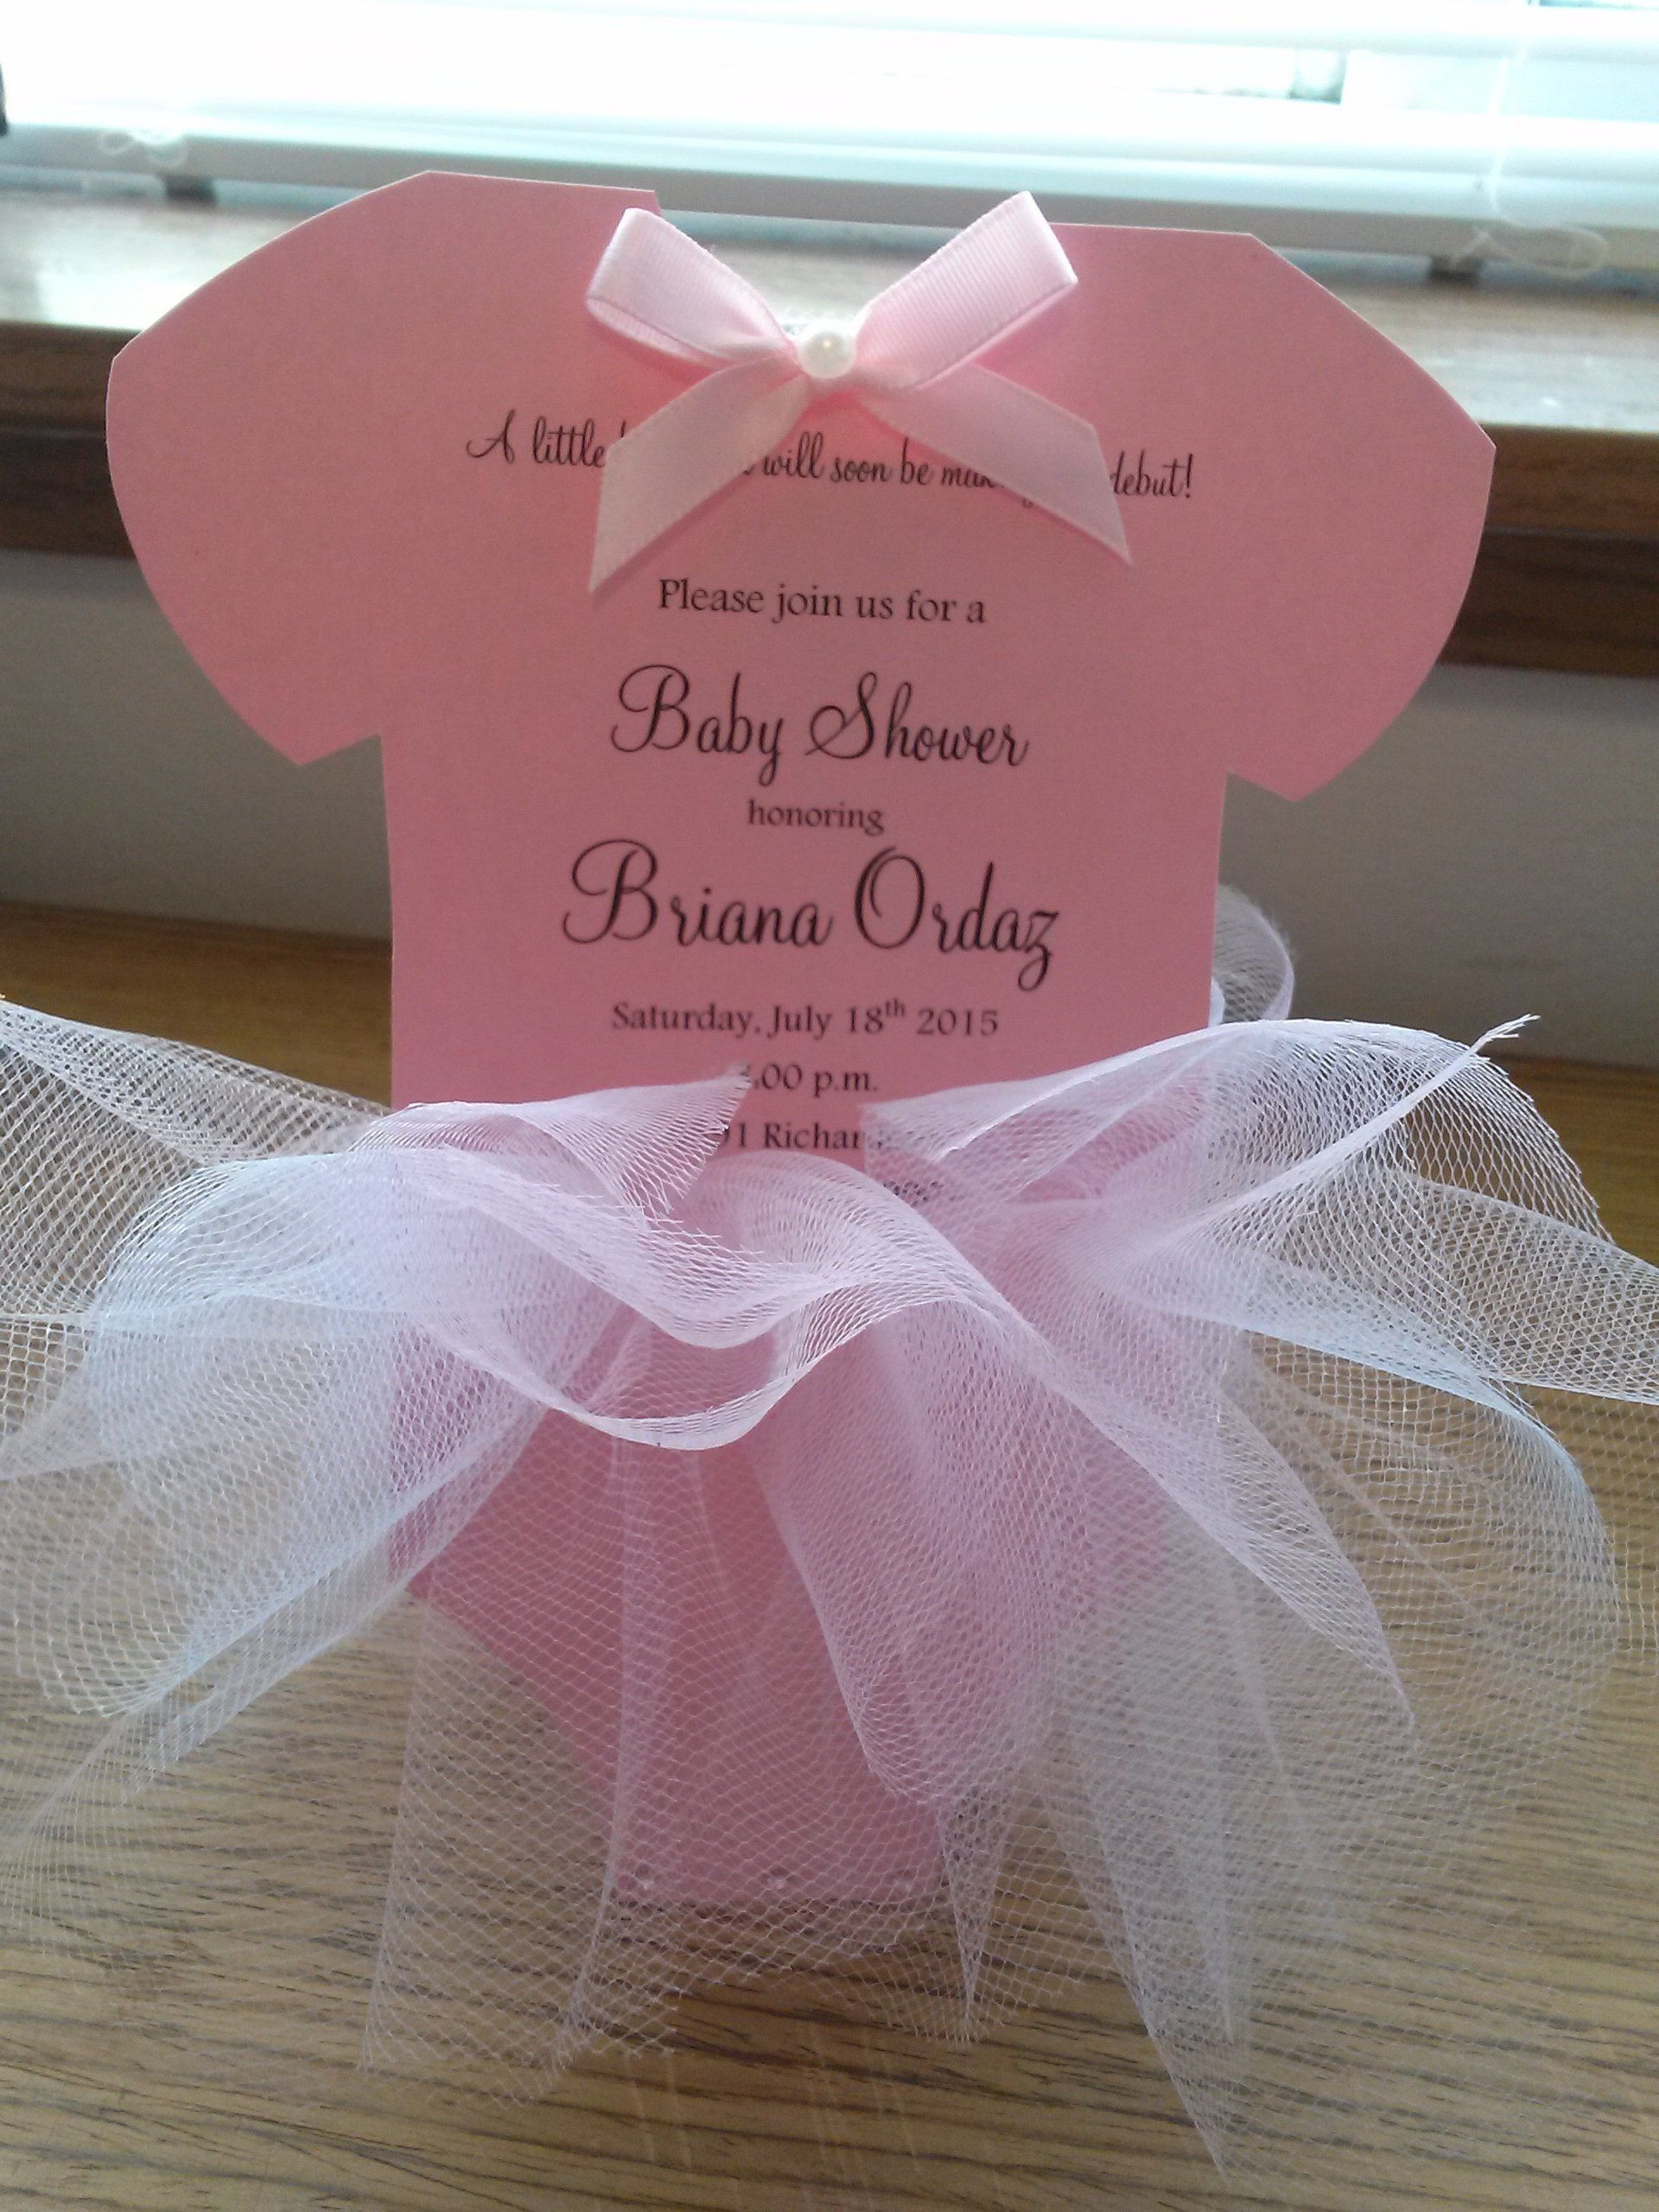 d3de87362 Cute Baby Shower Tutu Onesie Ballerina Pink tulle Invitation Girl by  whiteinfinity on Etsy